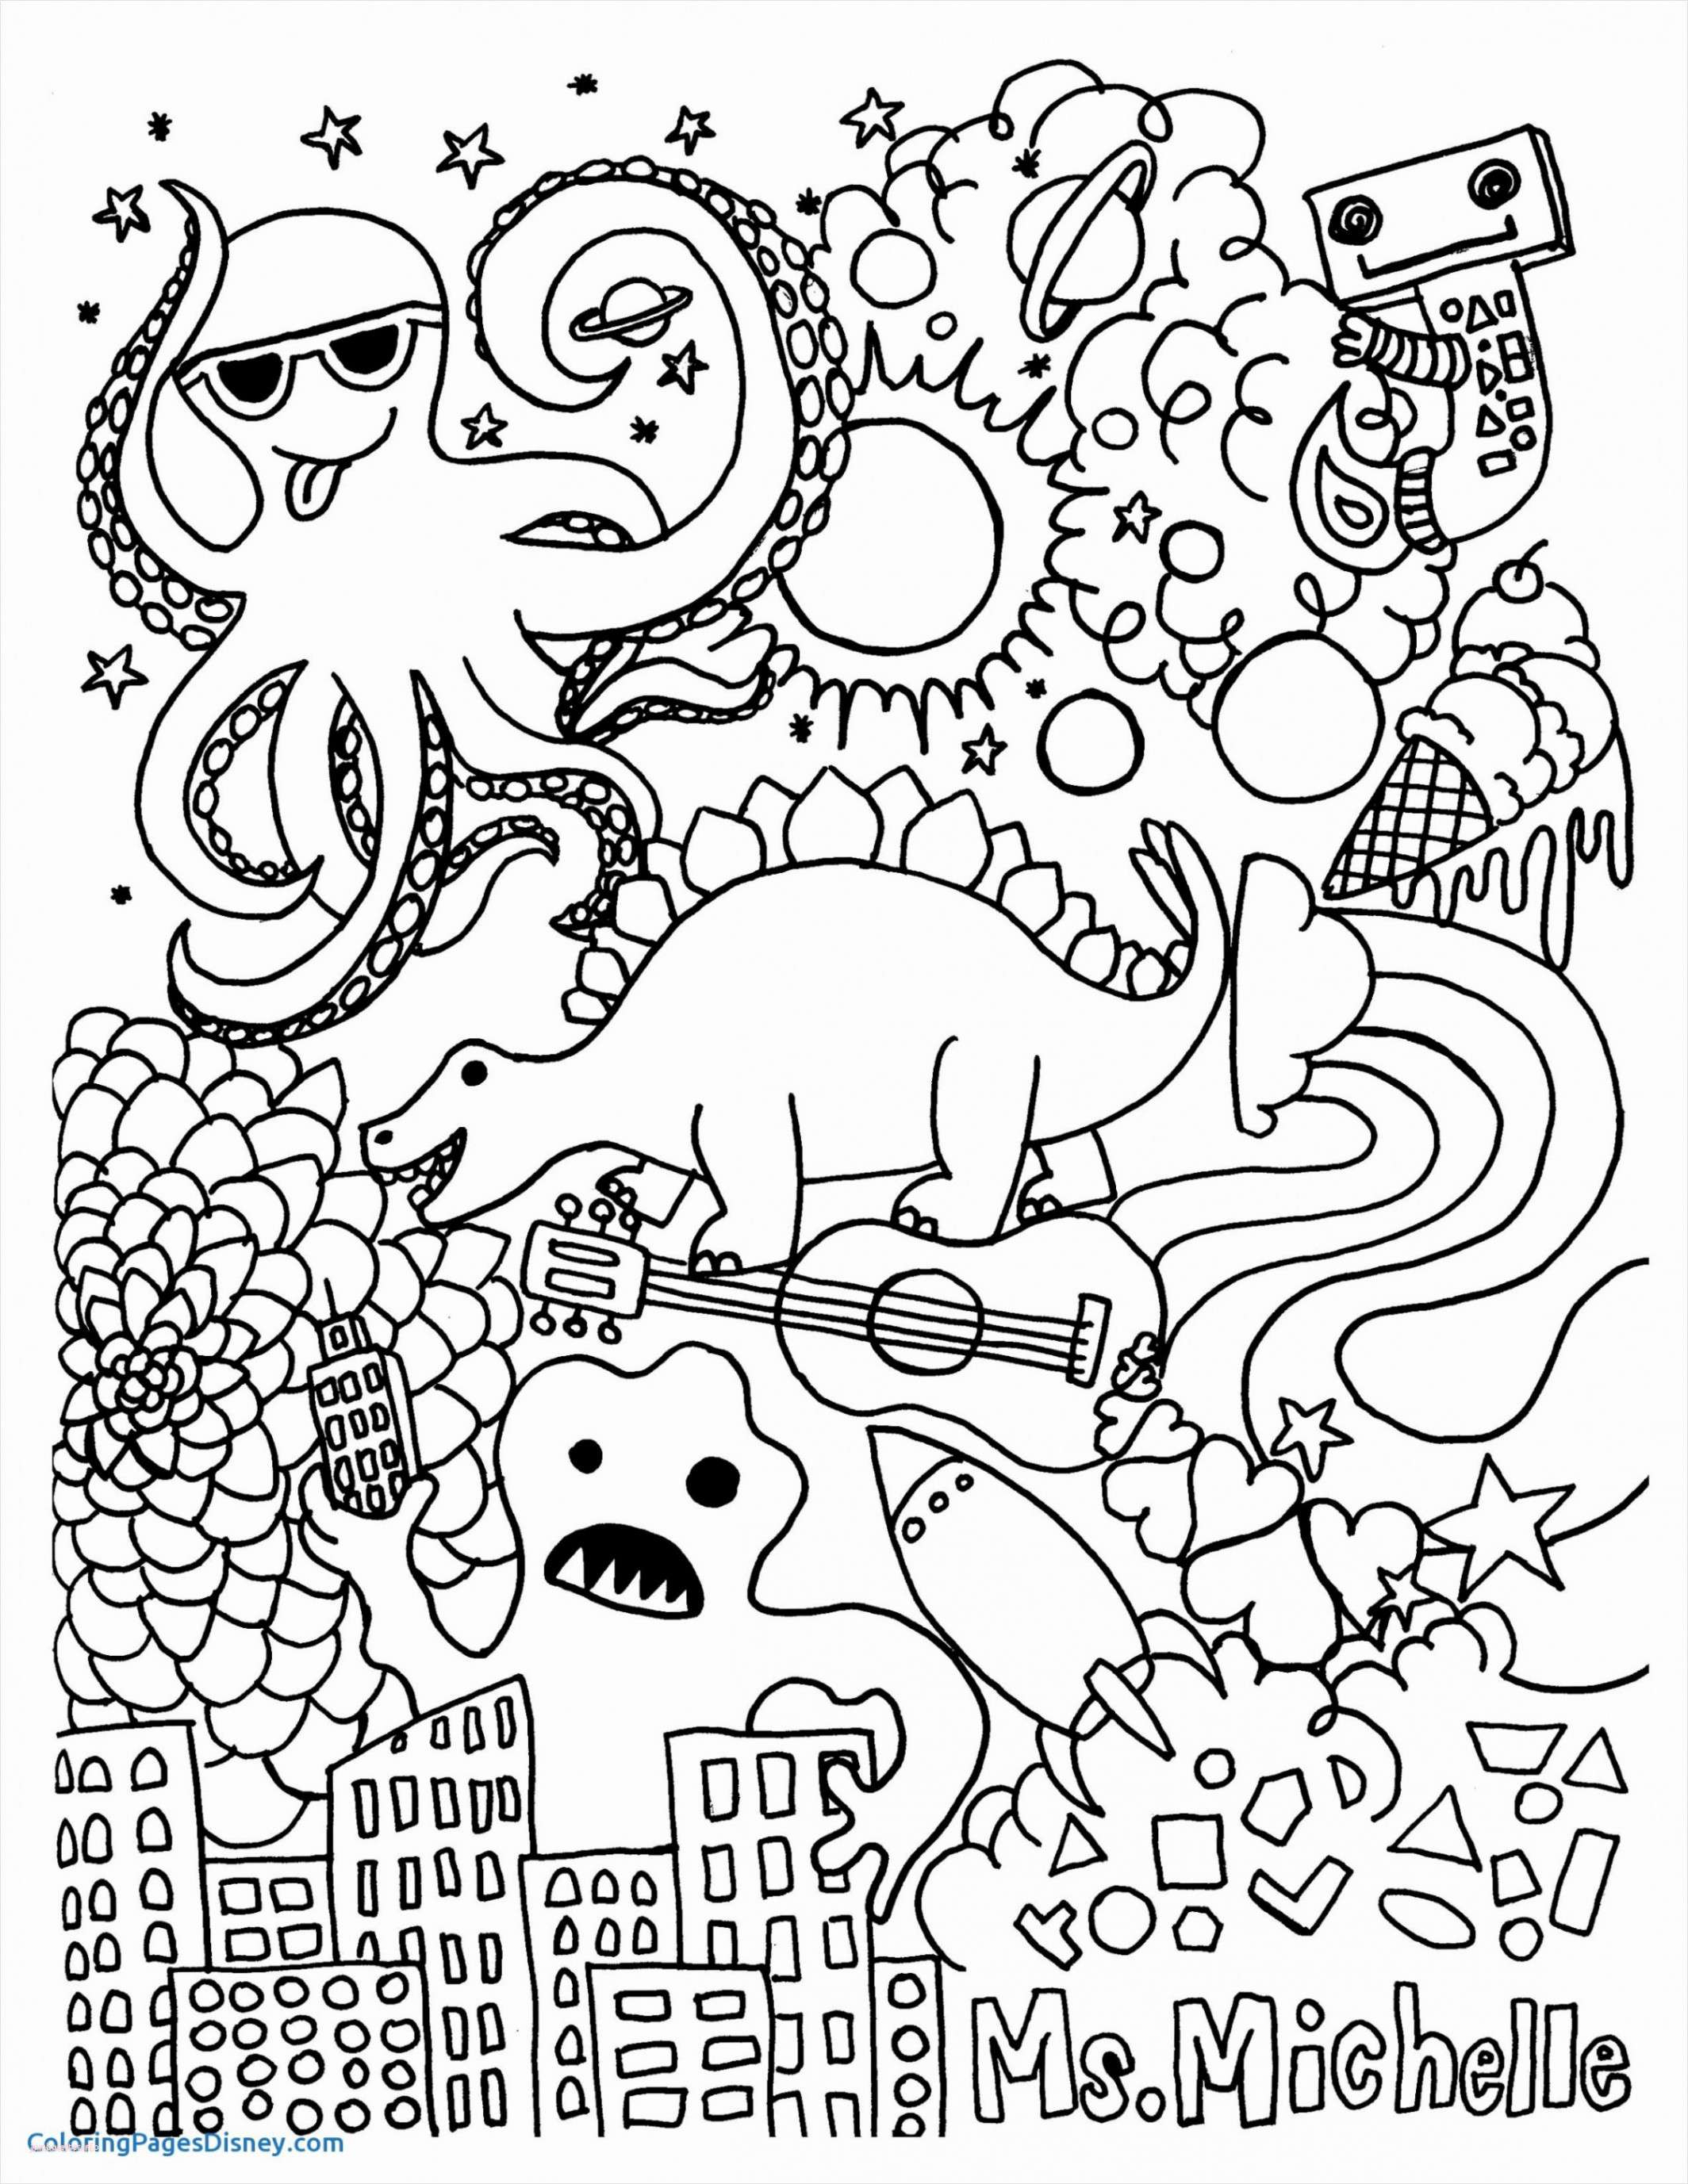 Skull Printable Coloring Pages  Collection 5r - Free For Children